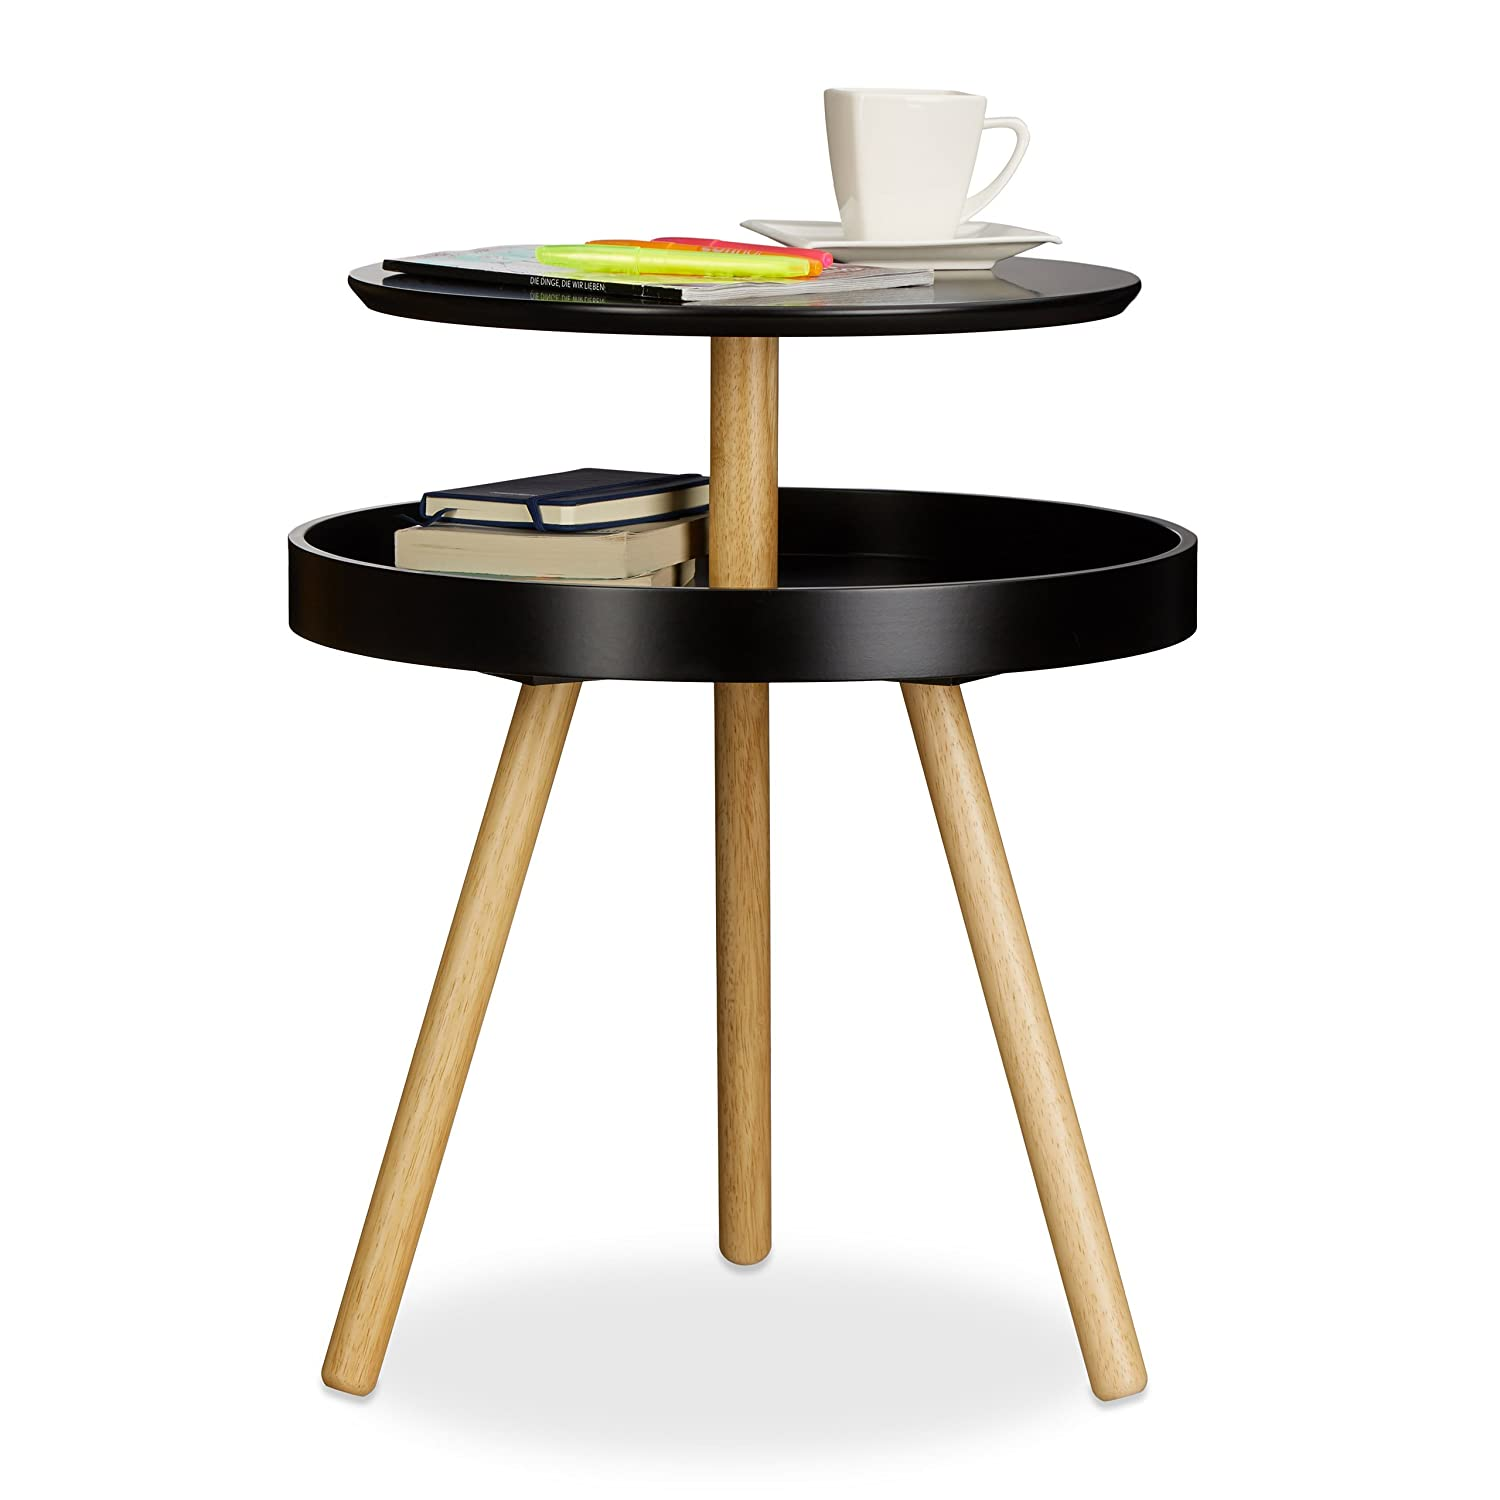 Round 3 Round Coffee Table Made Of Metal Cm ø80x23h: Practical Modern Round Coffee Side Table, Wooden, Birch